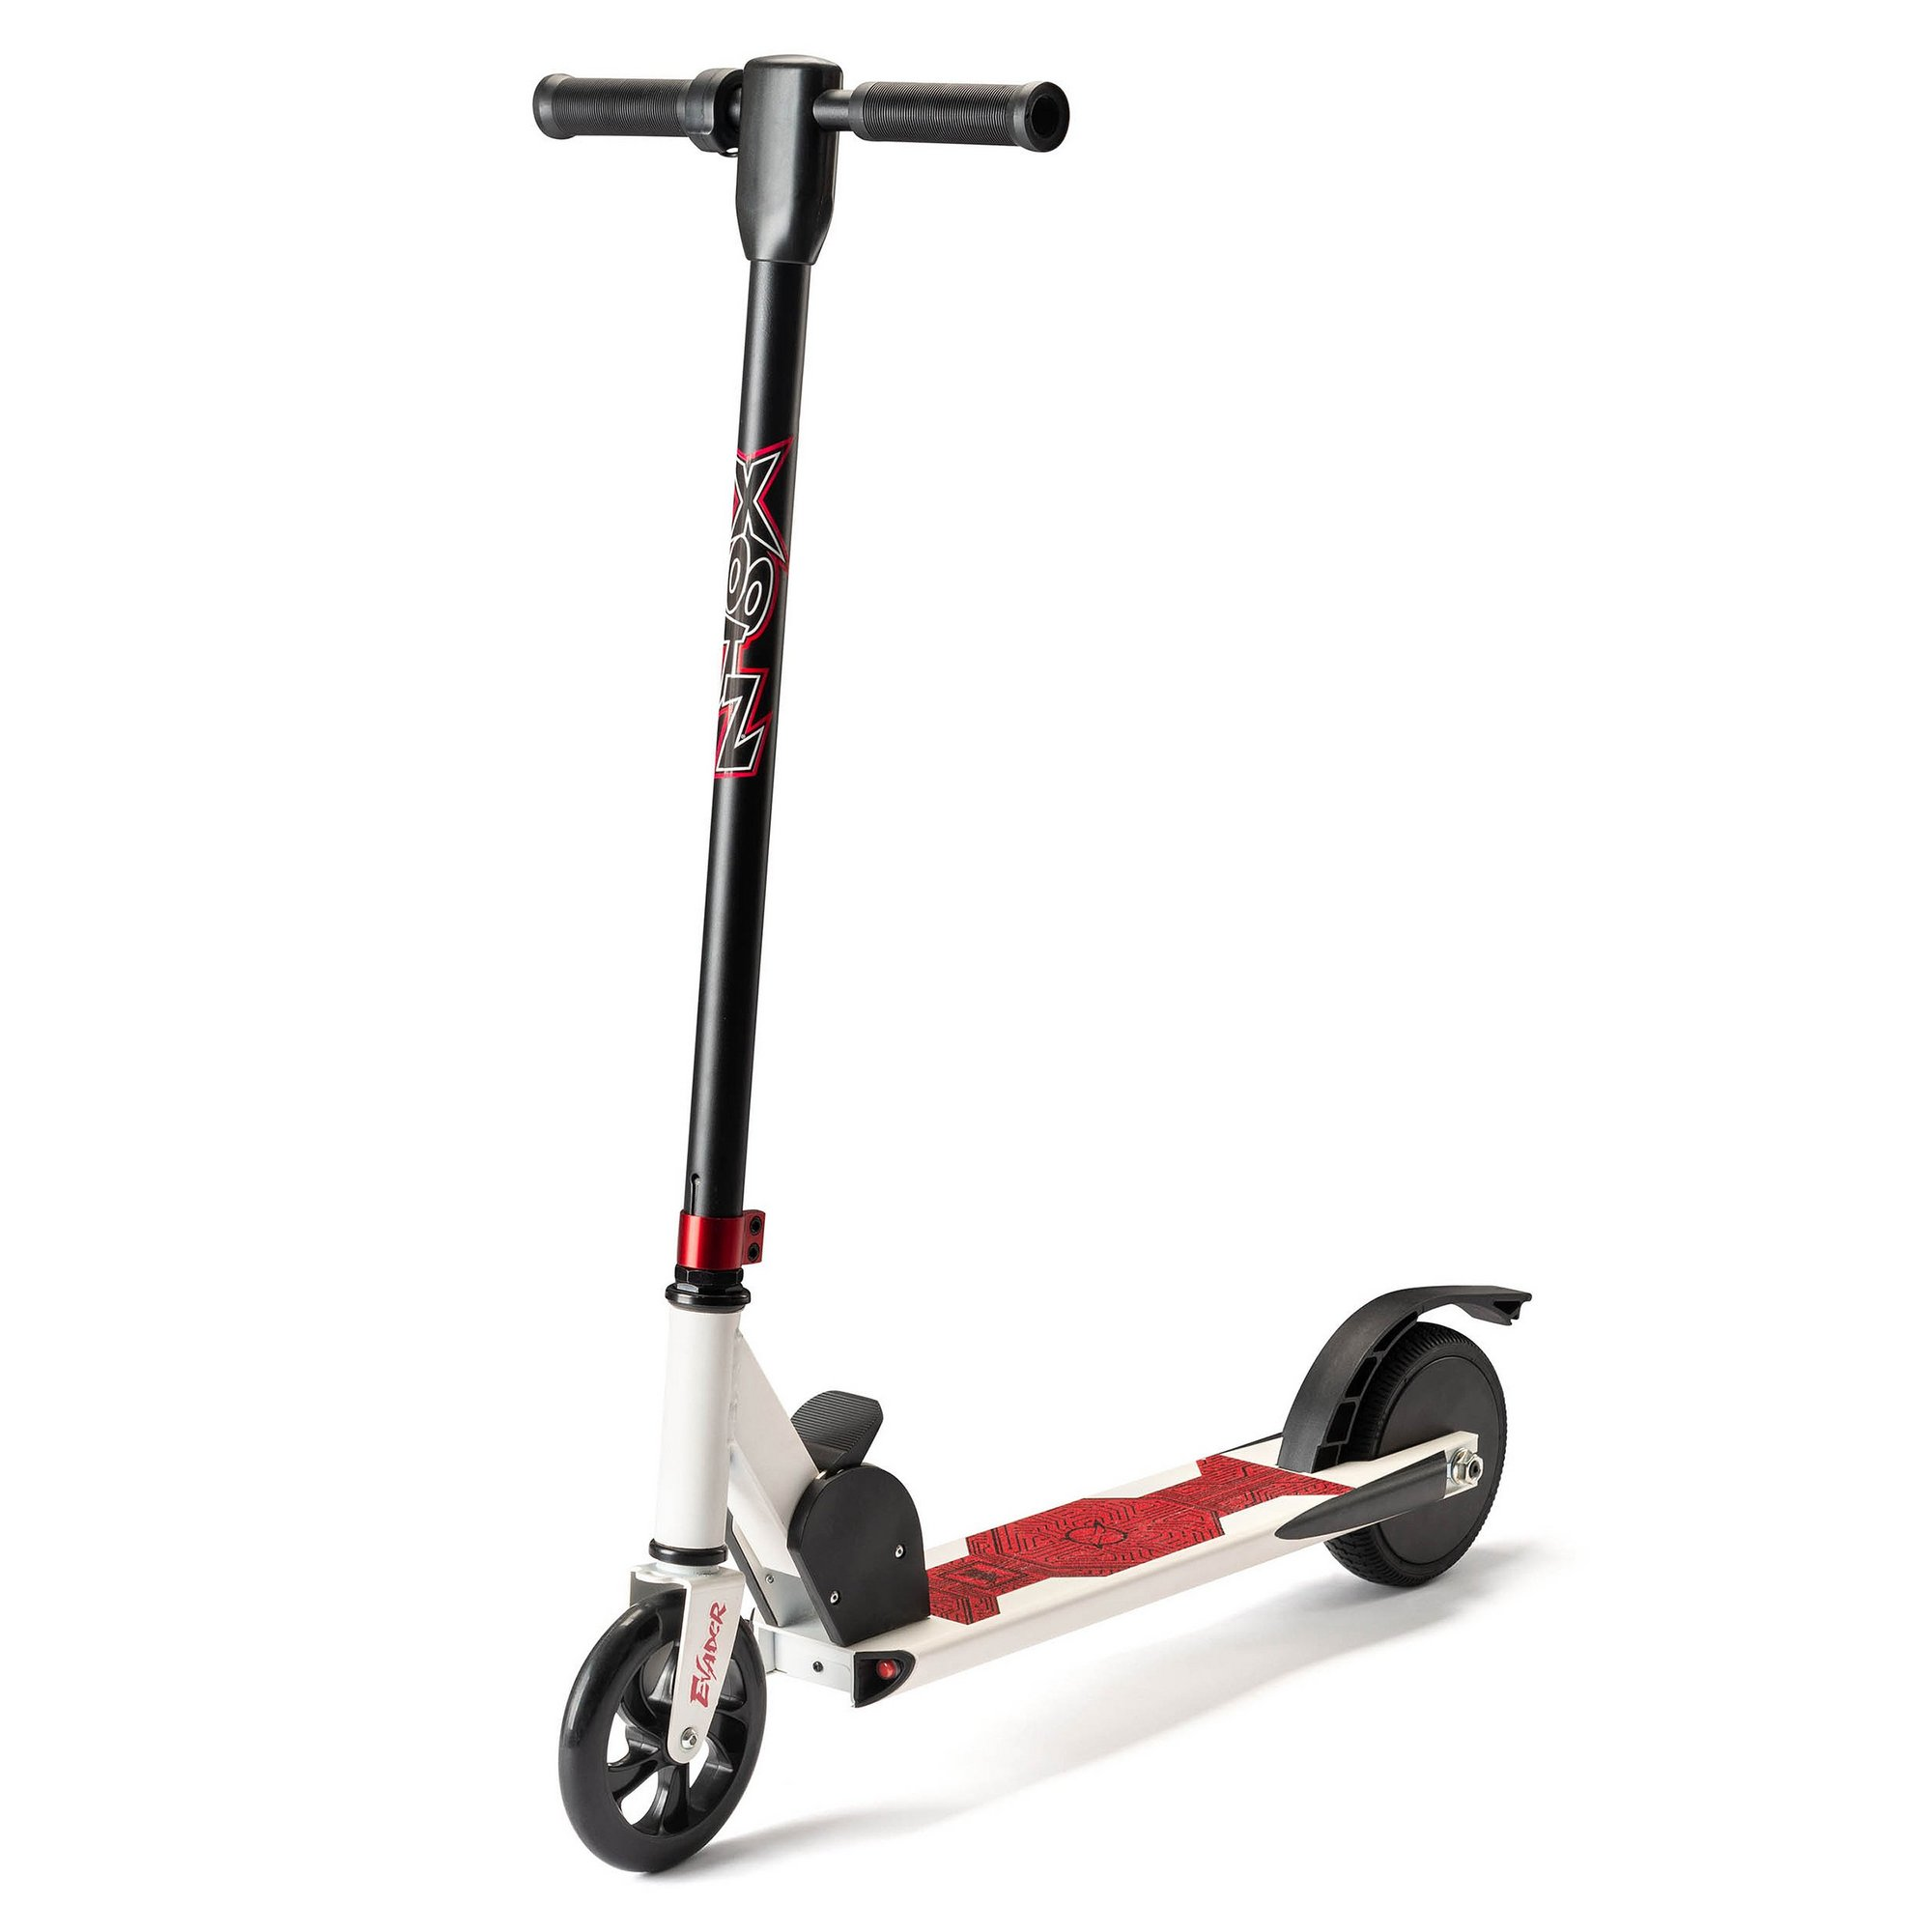 Image of Evader 24V 2.5AH Electric Scooter